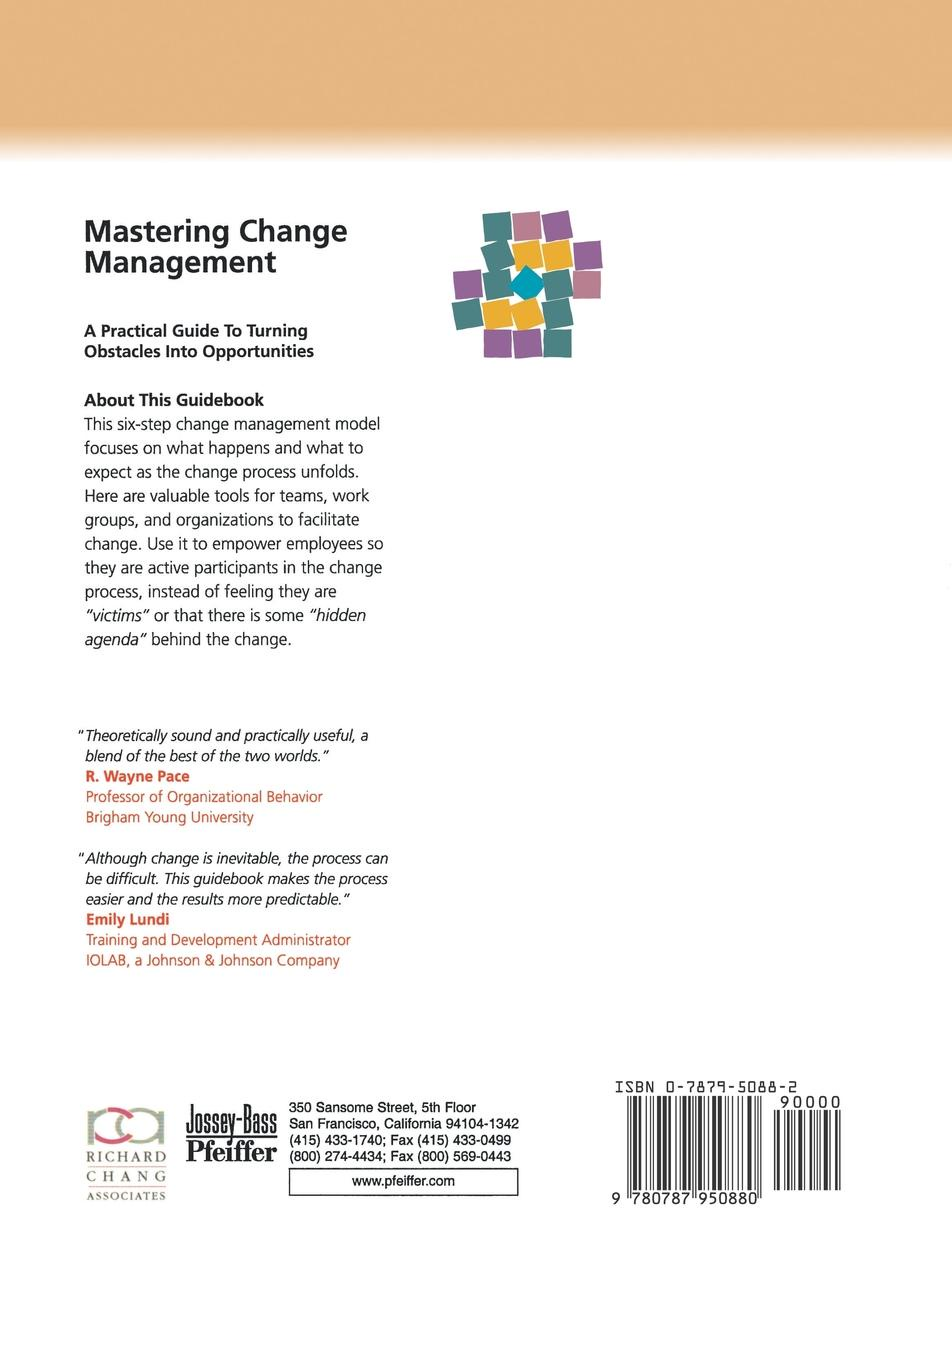 Richard Y. Chang, Louis Chang, Chang Mastering Change Management. A Practical Guide to Turning Obstacles Into Opportunities richard chang y the passion plan at work building a passion driven organization